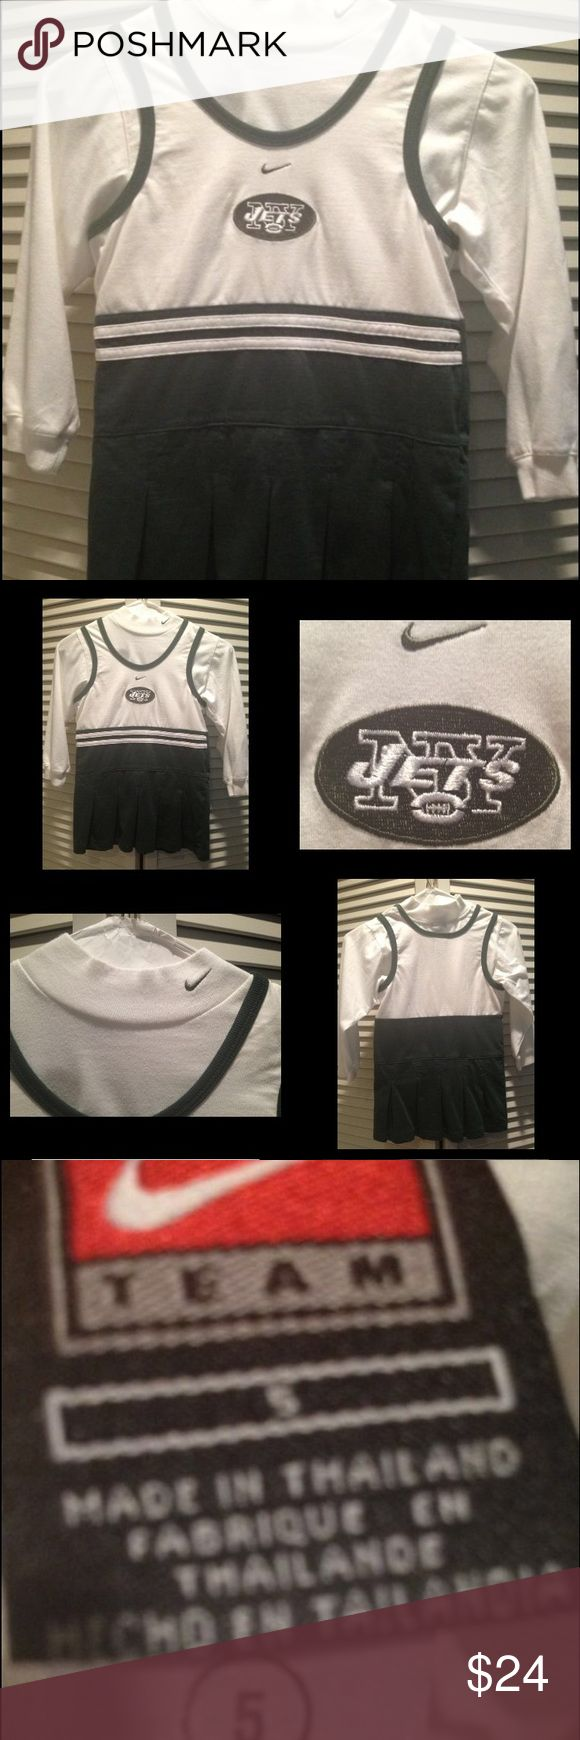 "GENUINE REEBOK NFL NY JETS  Girls DRESS MADE by TEAM Reebok! PRISTINE WHITE & NY JETS GREEN SIGNATURE COLORS  Cheerleader (or SUPERFAN) w/stylish extra details like striped banding under bodice & pleating on ""skirt"". Reebok NY Jets clothing =hi style, comfort & quality!   GENUINE ""JETS"" embroidered logo & REEBOK LOGOS on front of dress & REEBOK LOGO ON NECK OF TURTLENECK =athletic appeal & authenticity! Pleated details on jumper, banding around neck & striping at waist! Jumper: 60% COTTON…"